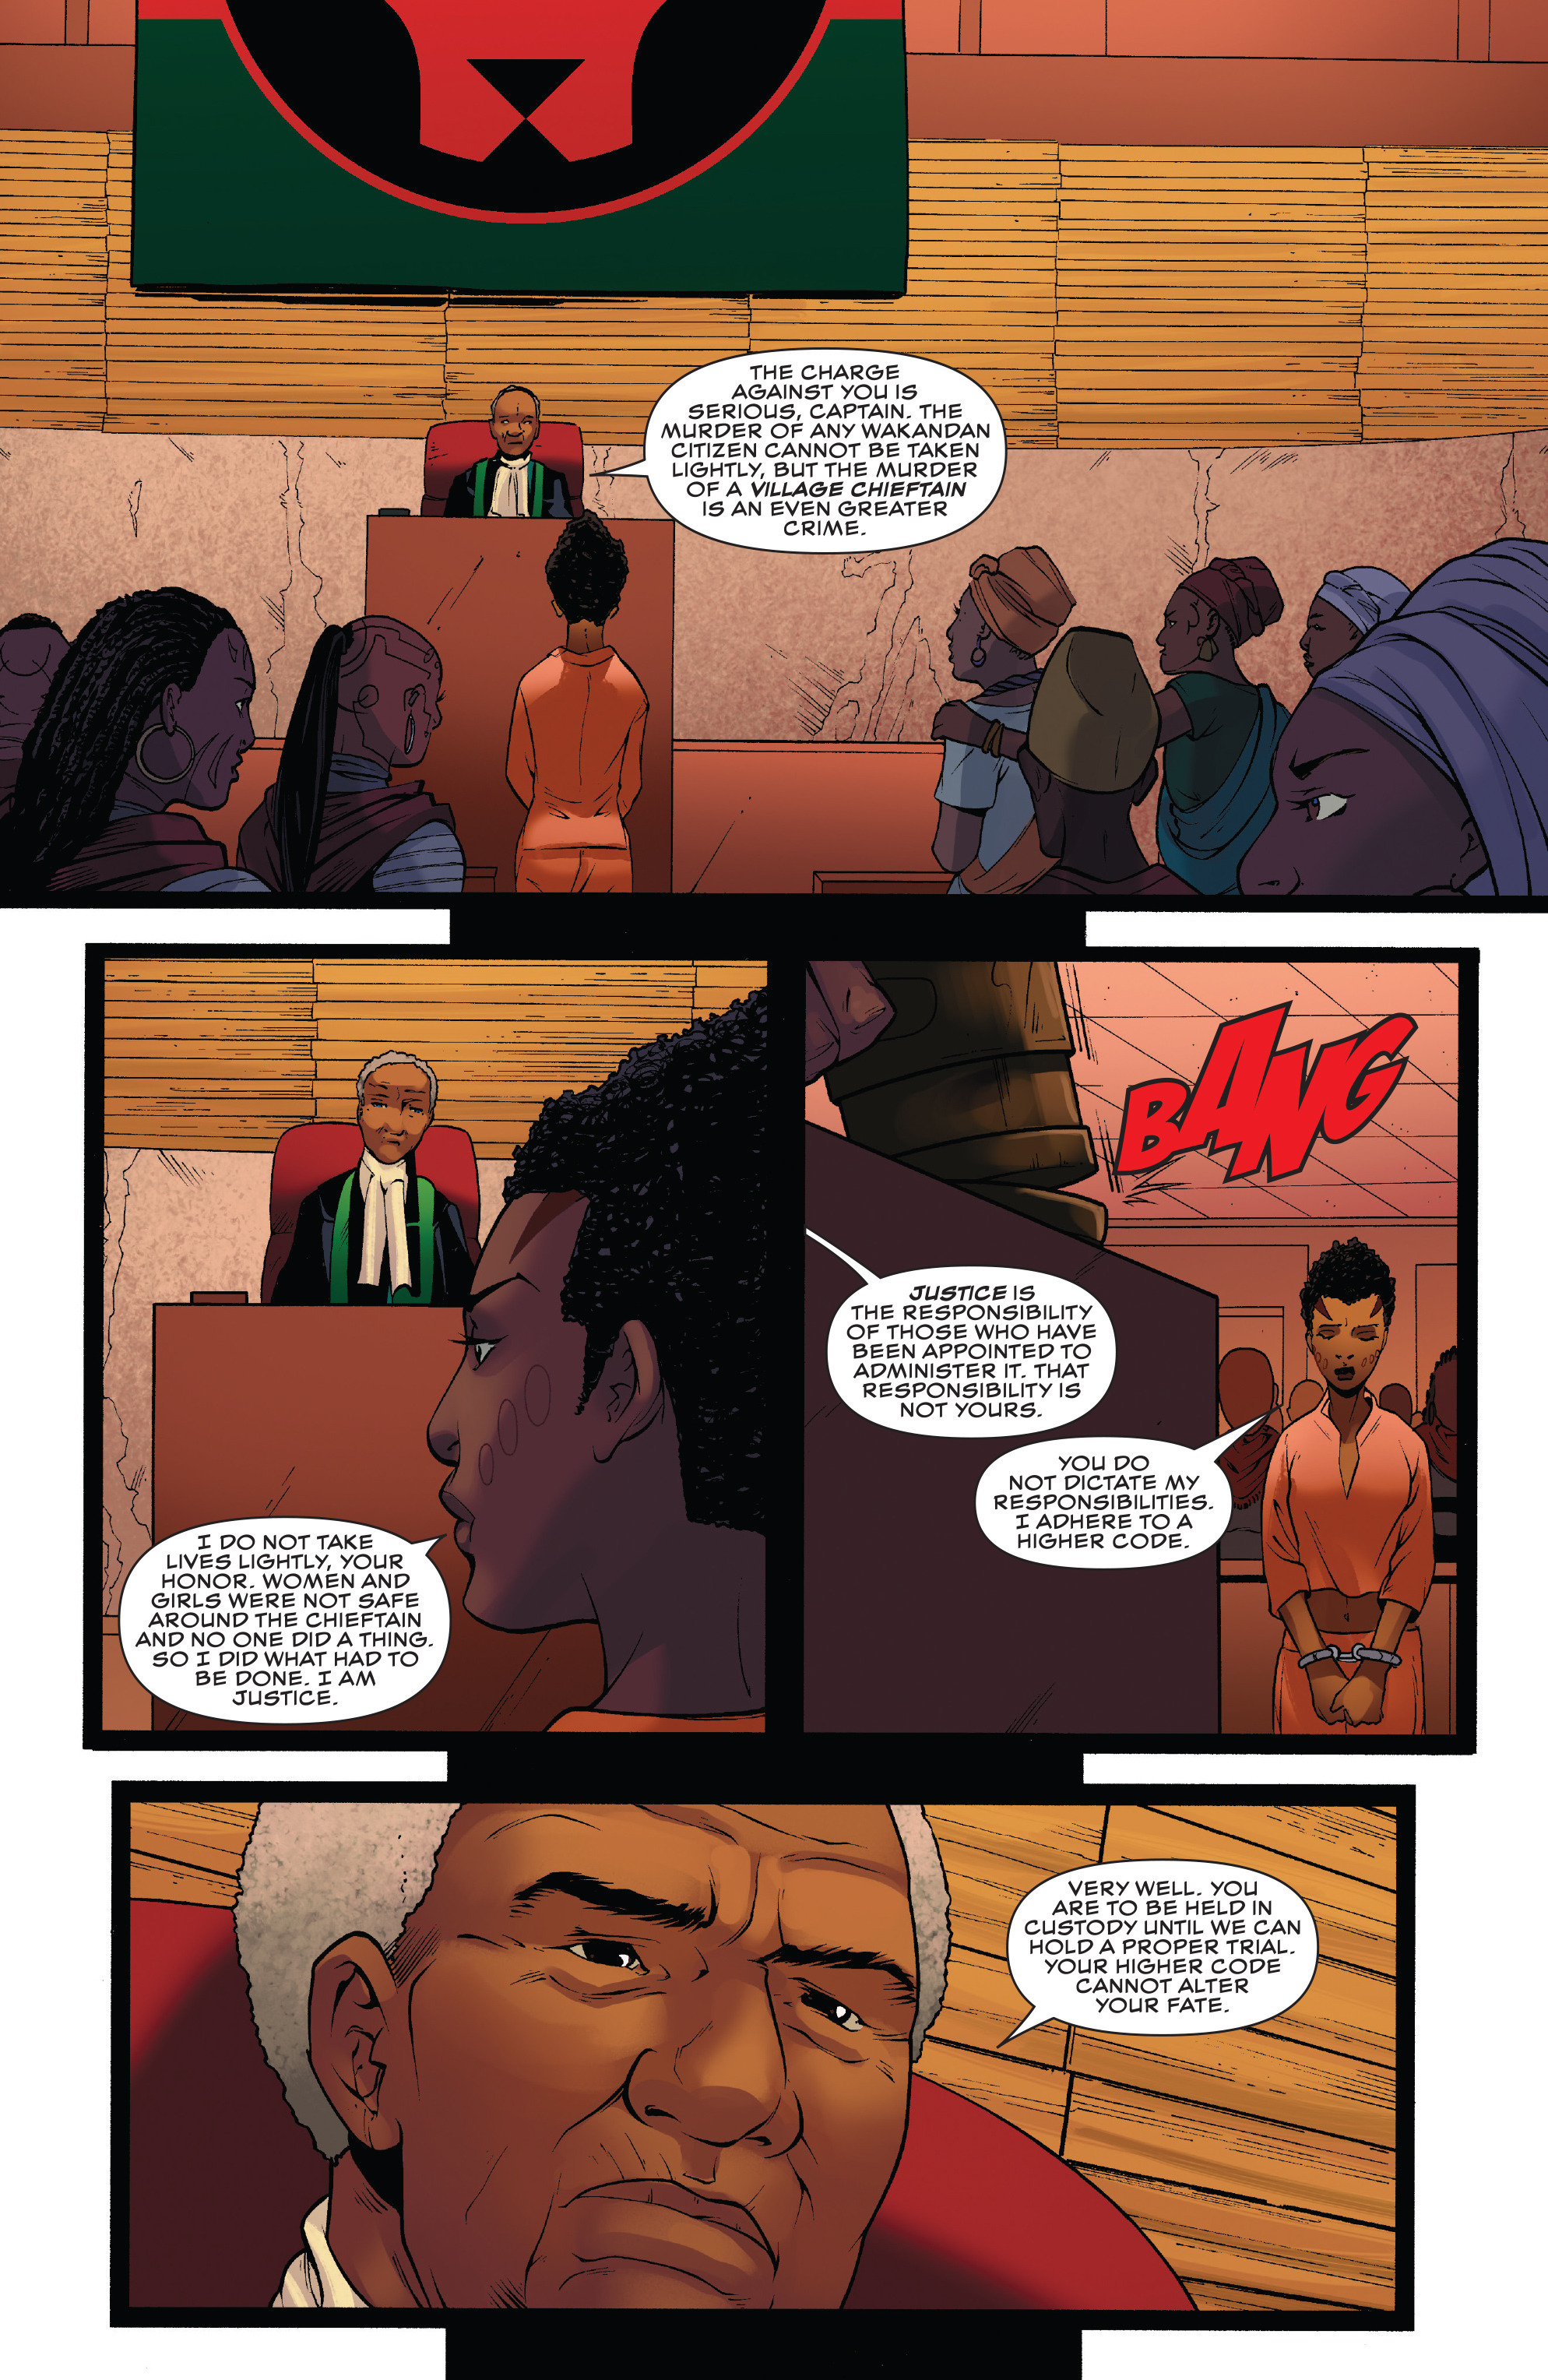 Read online Black Panther: World of Wakanda comic -  Issue #4 - 22